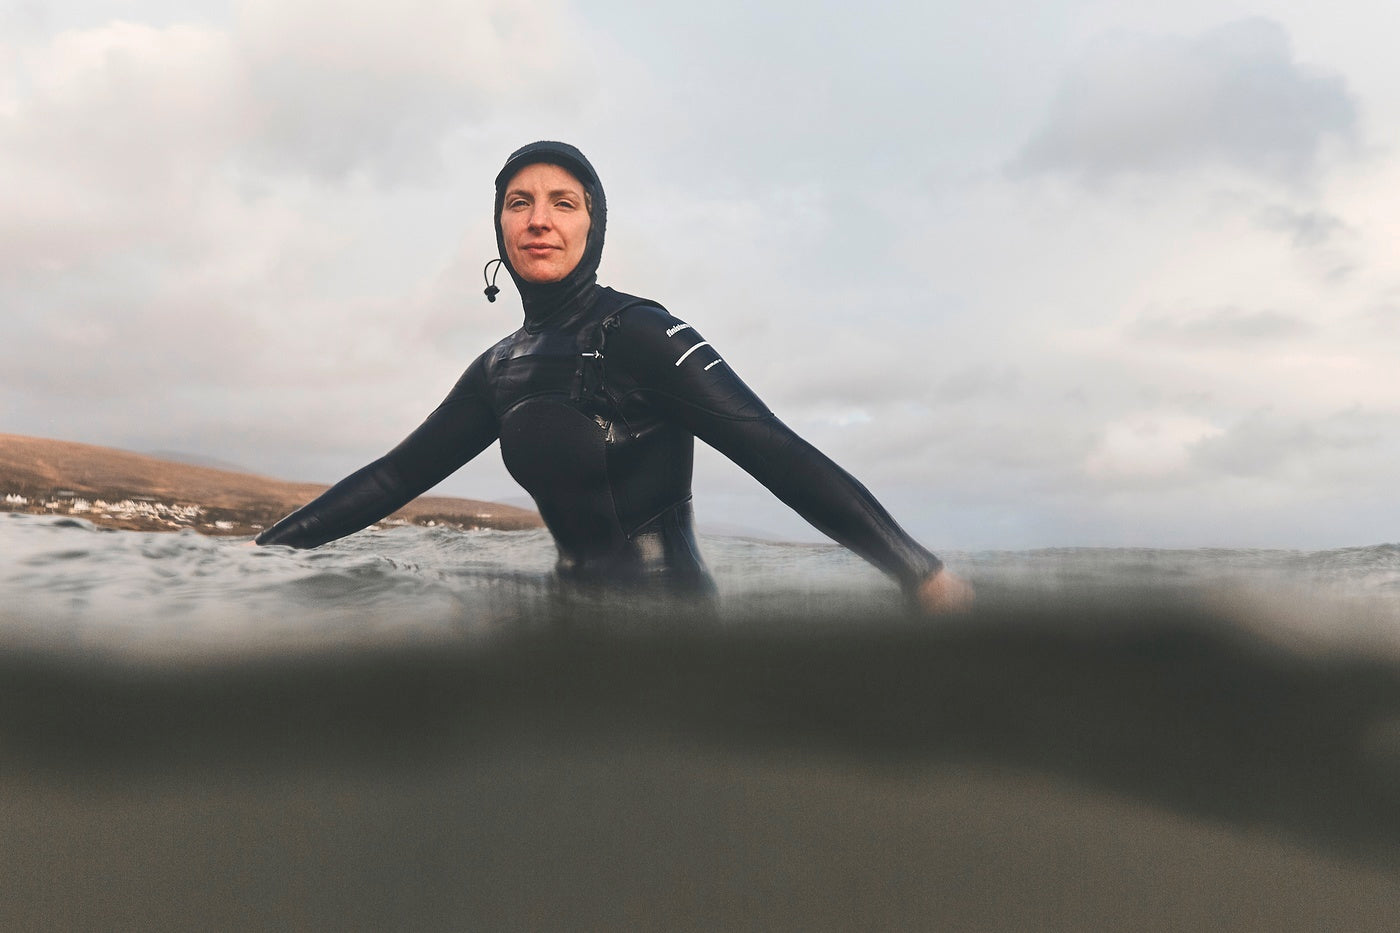 Easkey waiting for waves in the water wearing the Nieuwland 4mm wetsuit